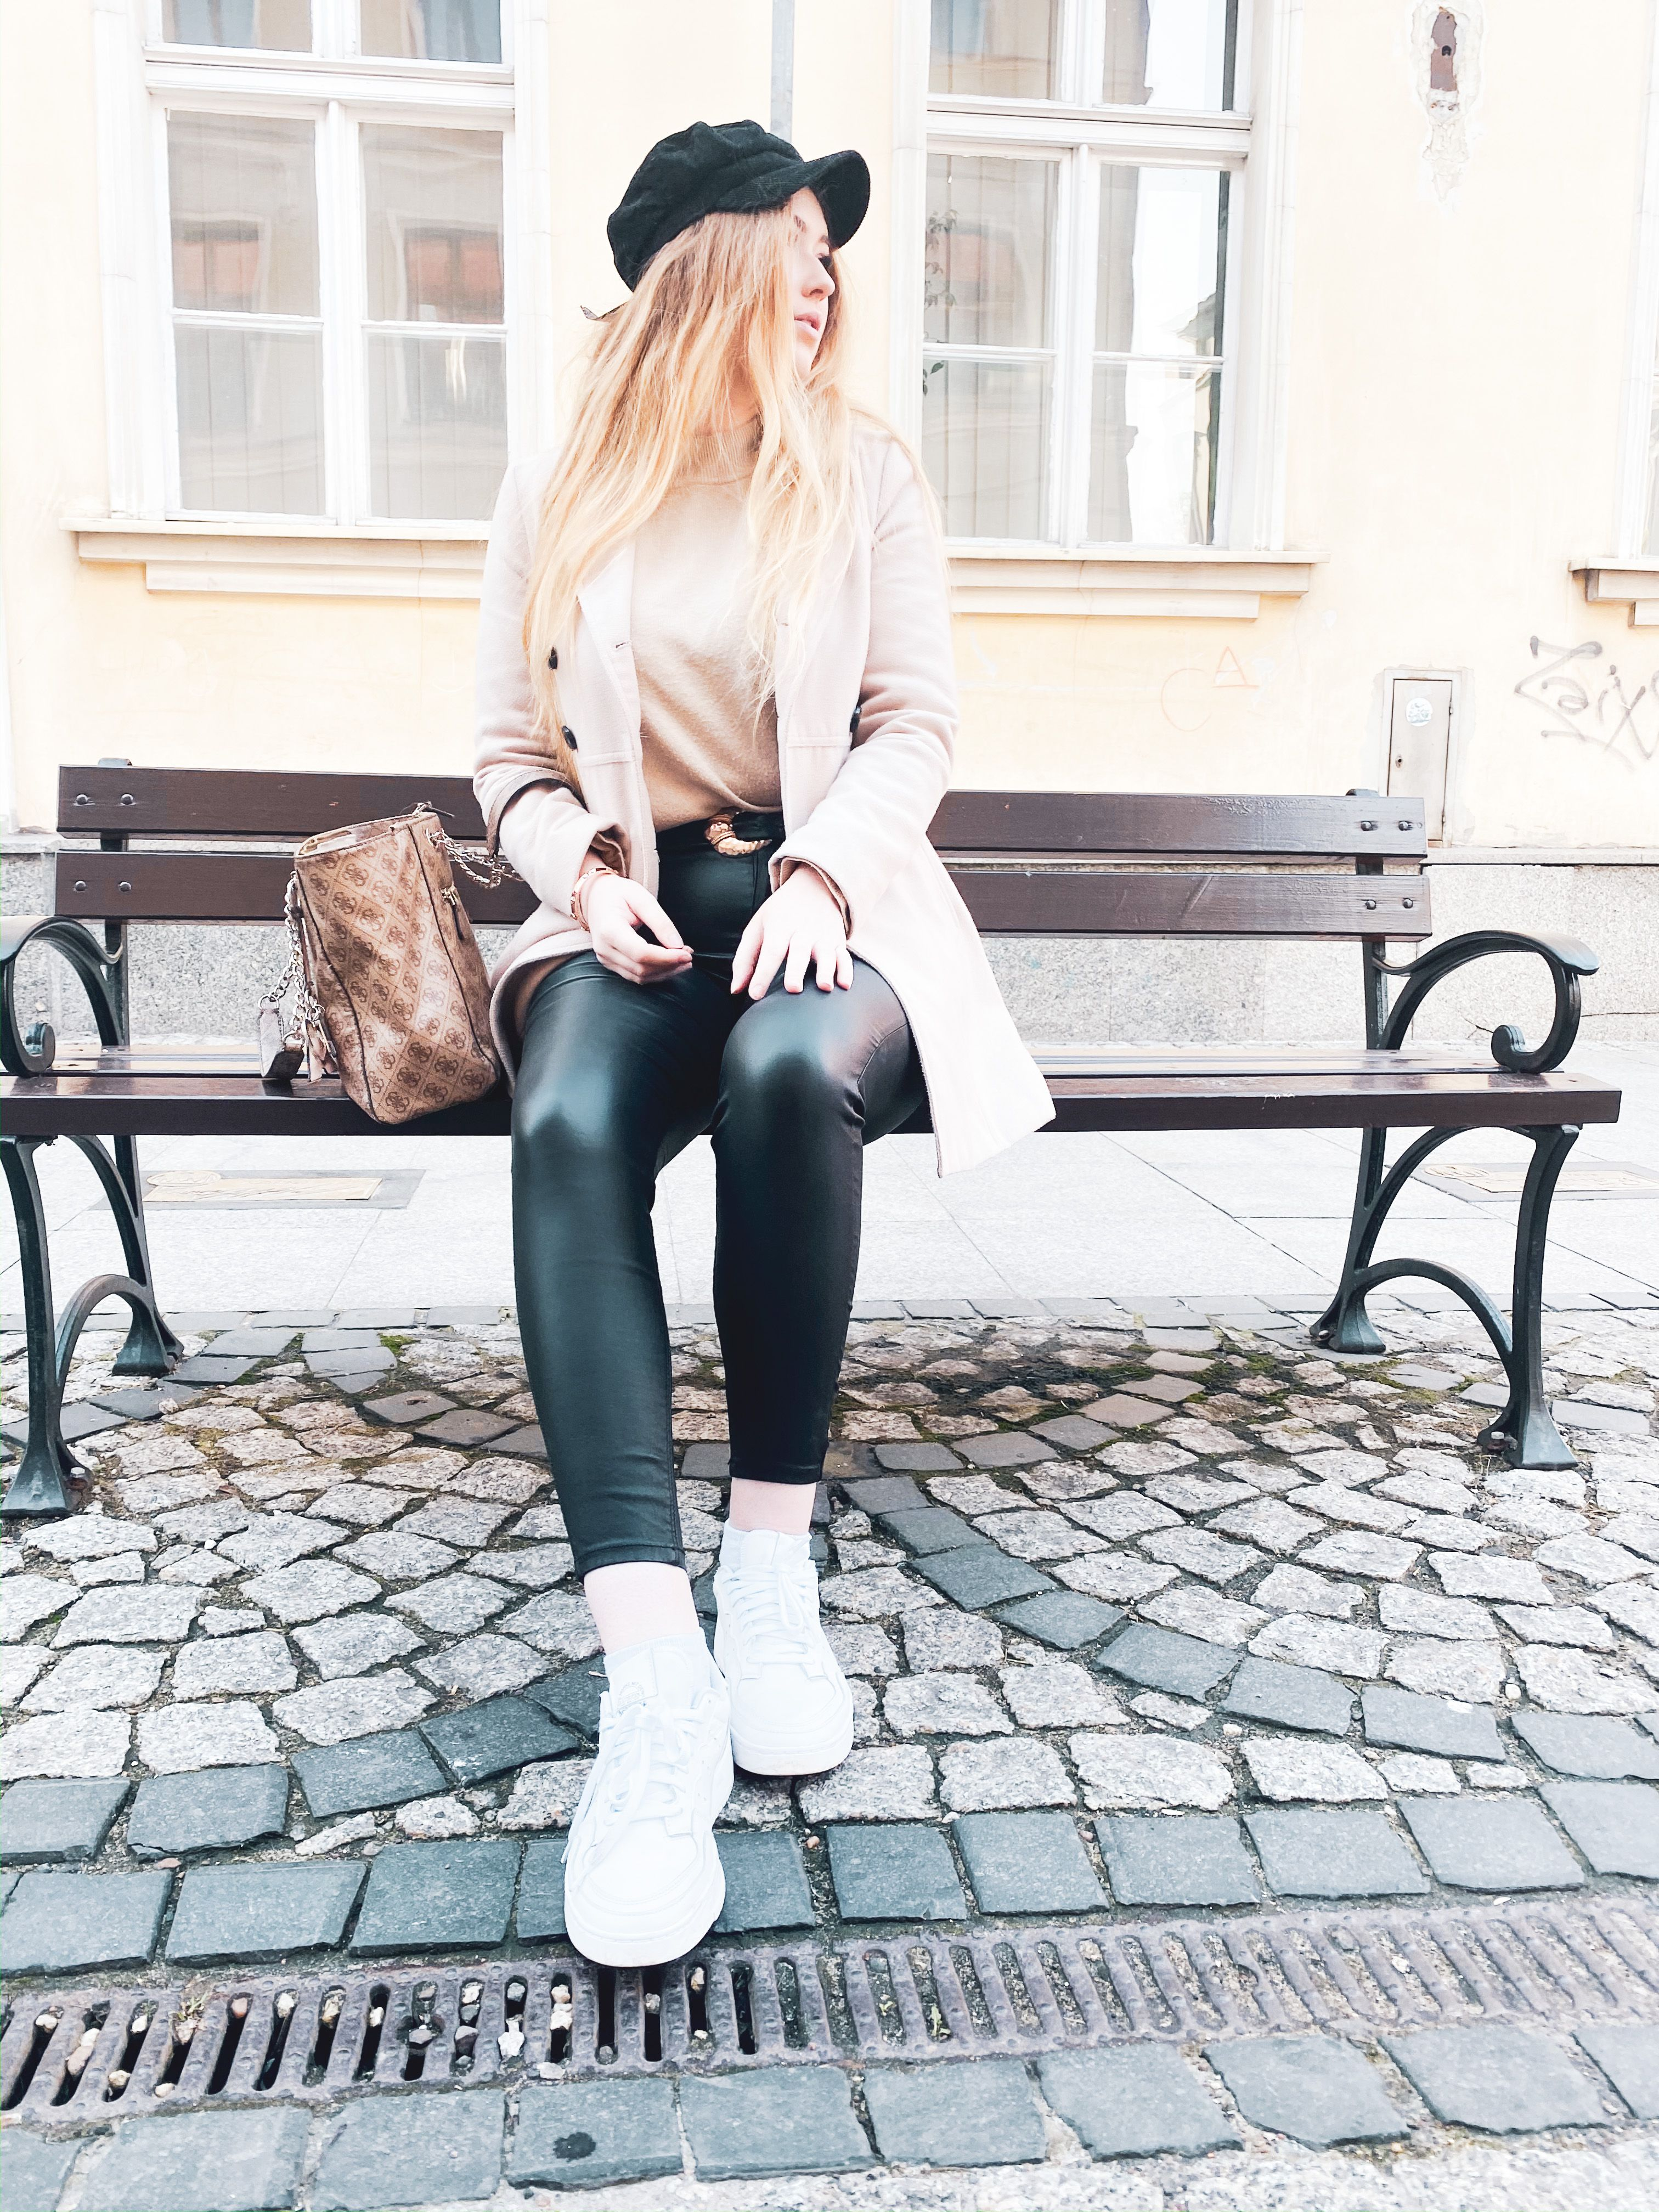 More about wearing leather pants on my blog ✨ #leather #leatherpants #fashion #ootd #outfit #style #fashiontrend #trendyoutfits #trendy #outfitoftheday  #outfitideasforwomen  #outfitideas